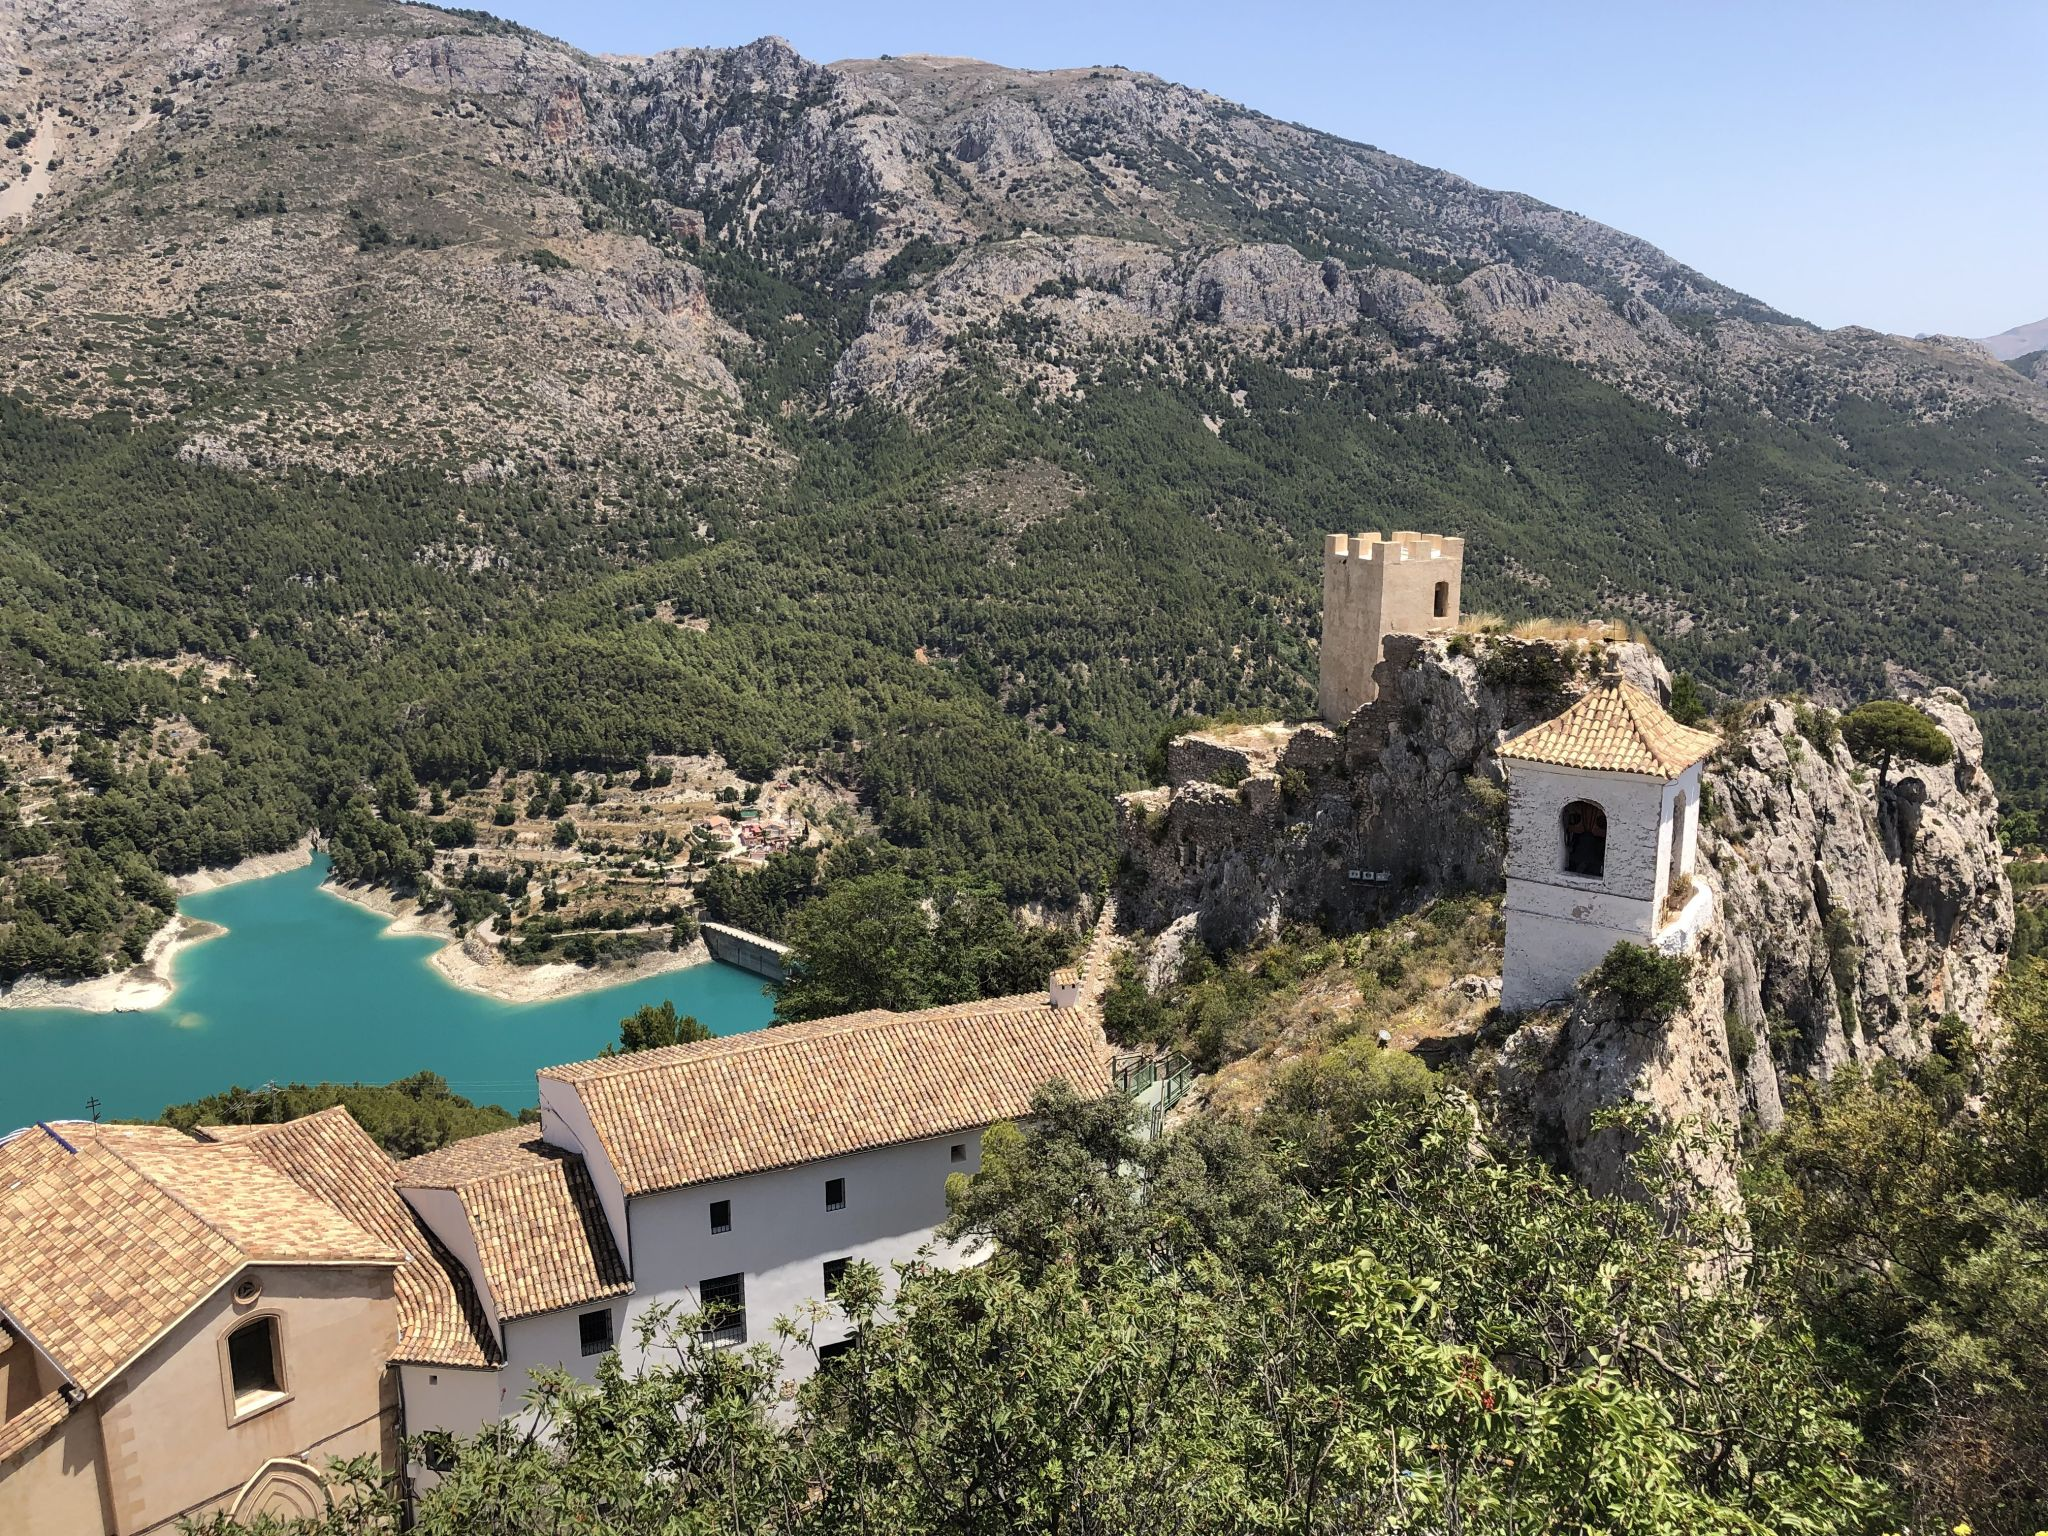 guadalest white bell tower